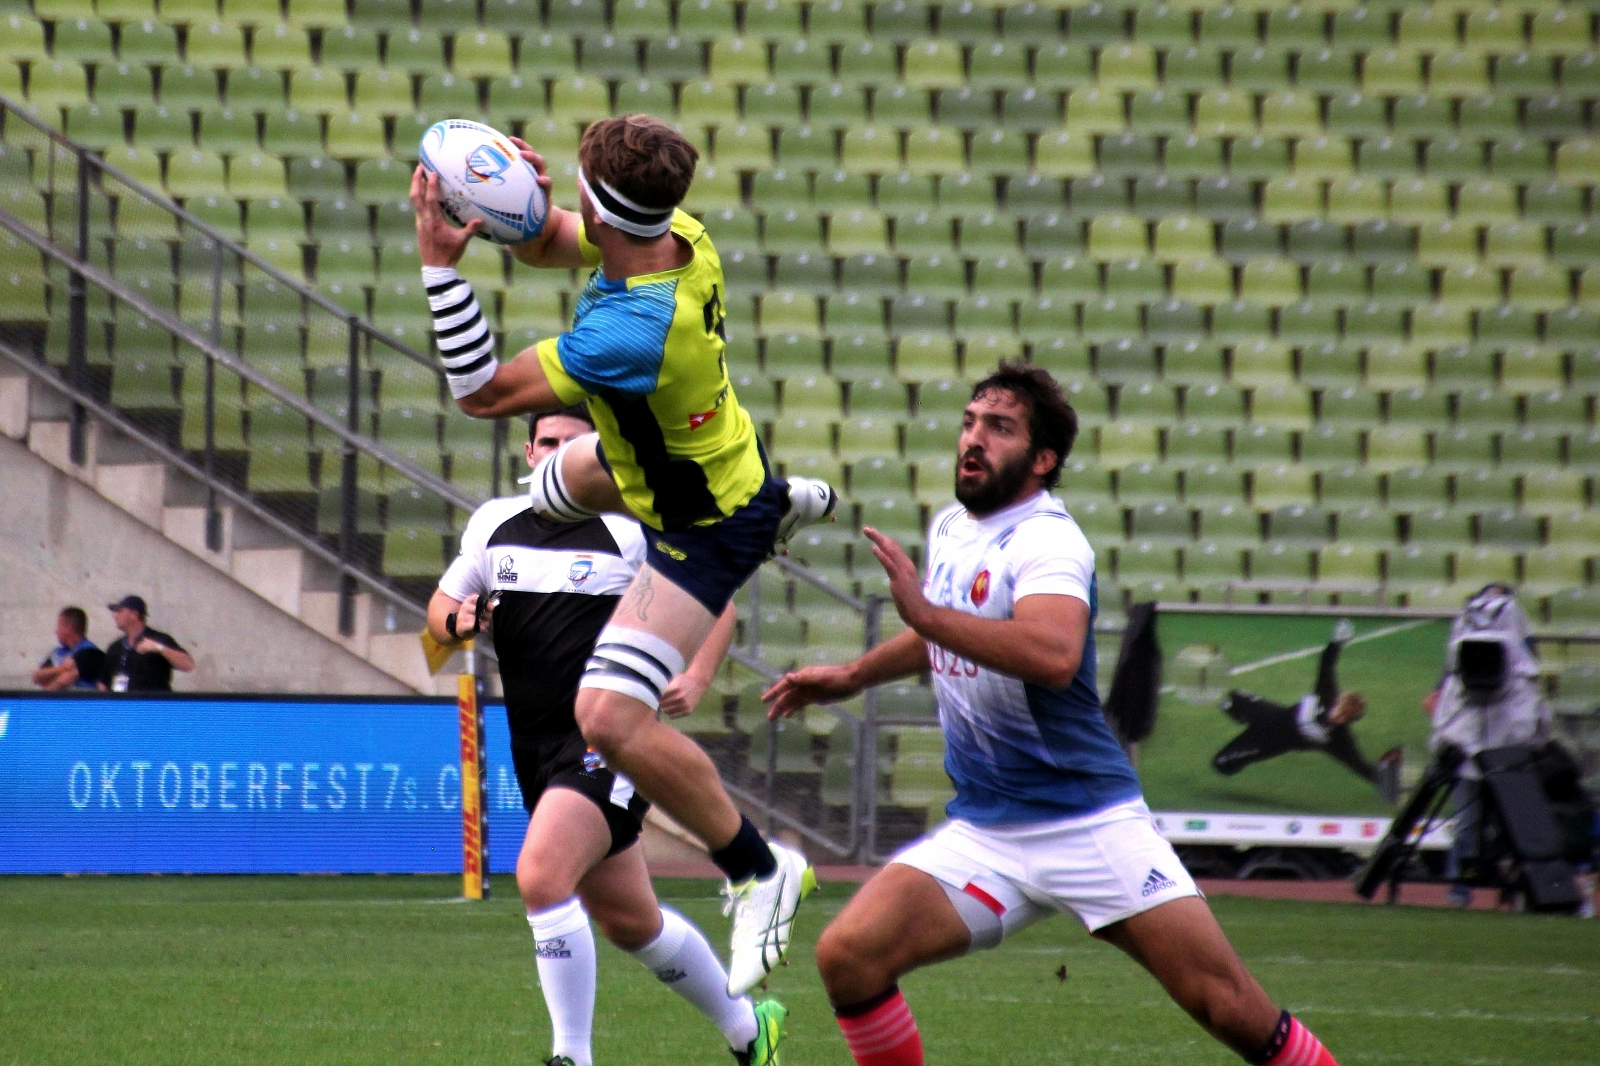 Australia goes for the ball against France -- munichFOTO